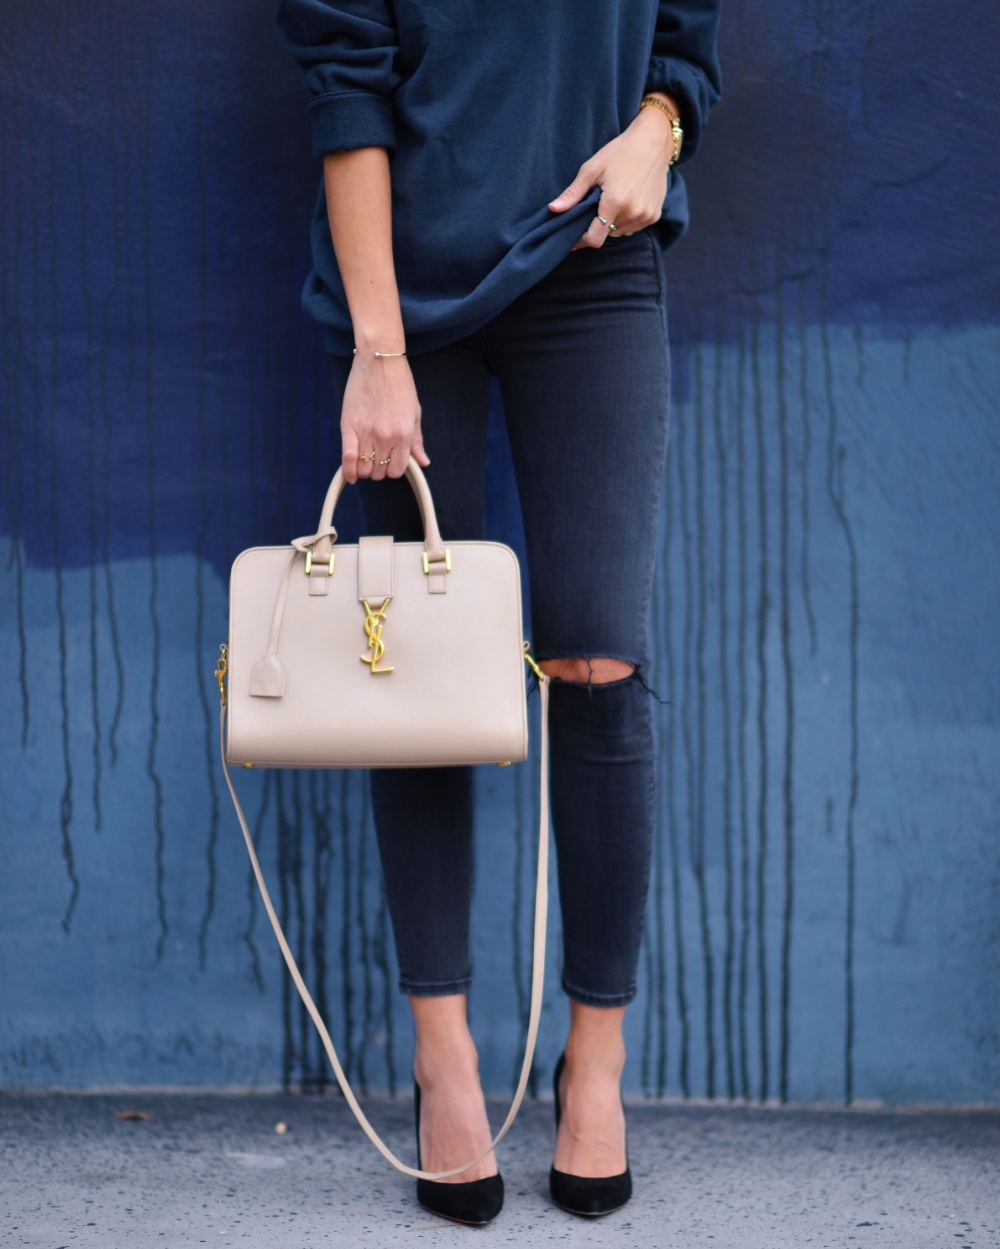 Topshop_SaintLaurent_GianvittoRossi_Graffitti_SanDiego_Streetstyle_LucysWhims_Fashion_Blog.jpg